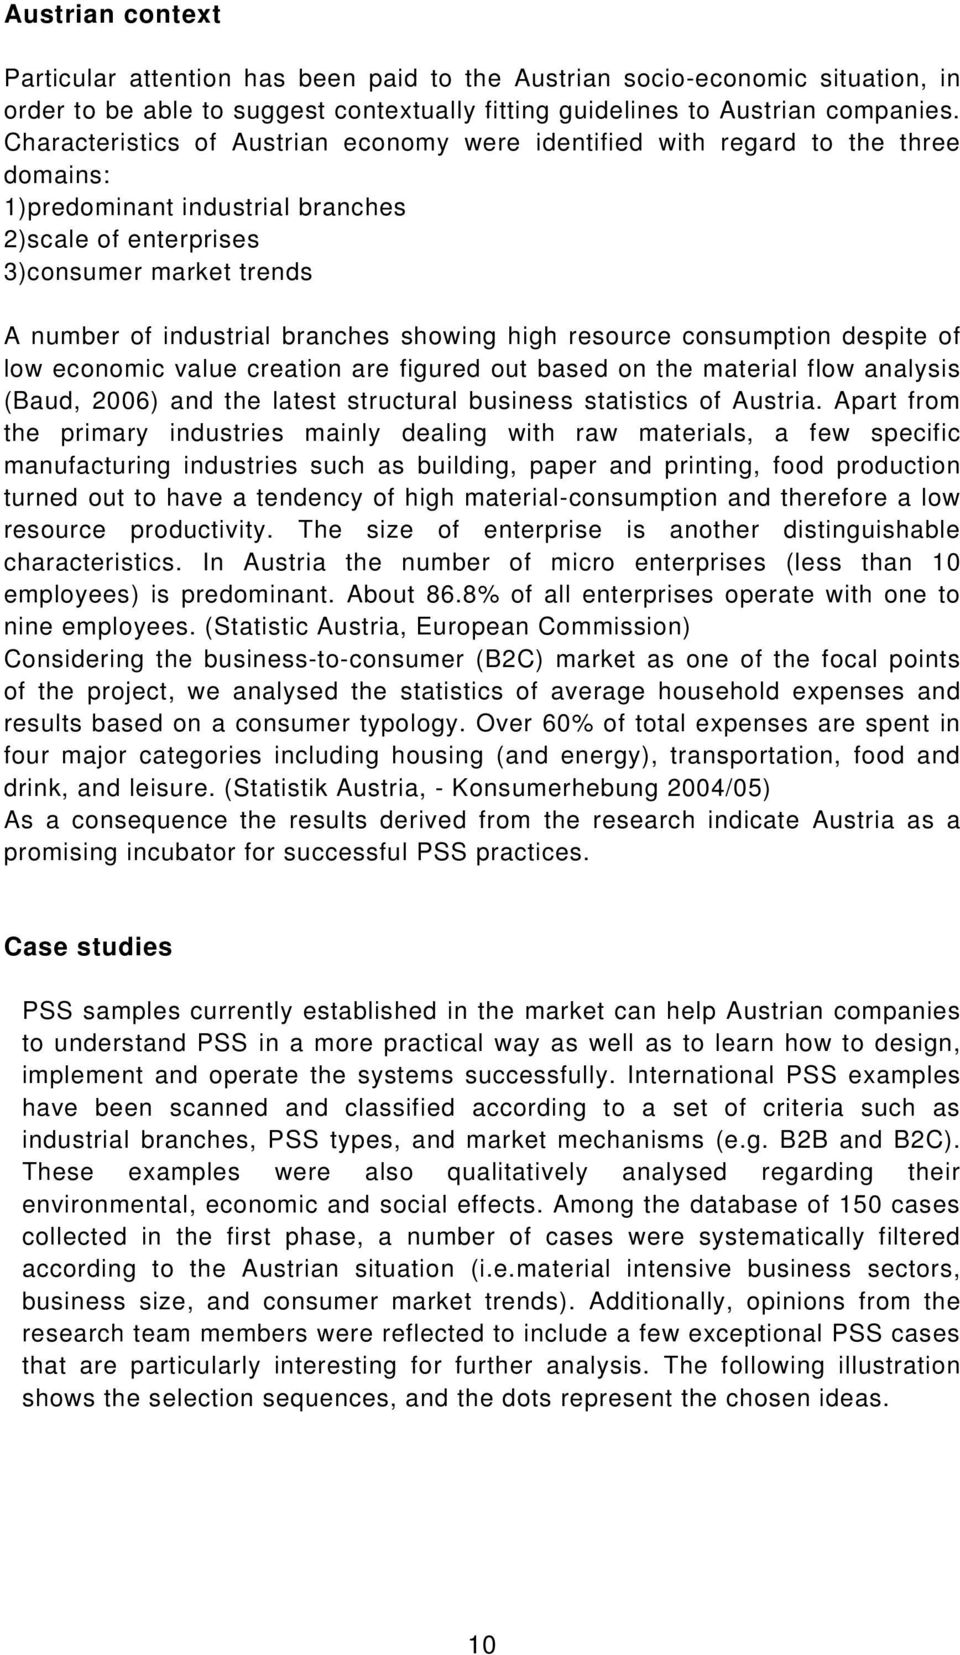 showing high resource consumption despite of low economic value creation are figured out based on the material flow analysis (Baud, 2006) and the latest structural business statistics of Austria.